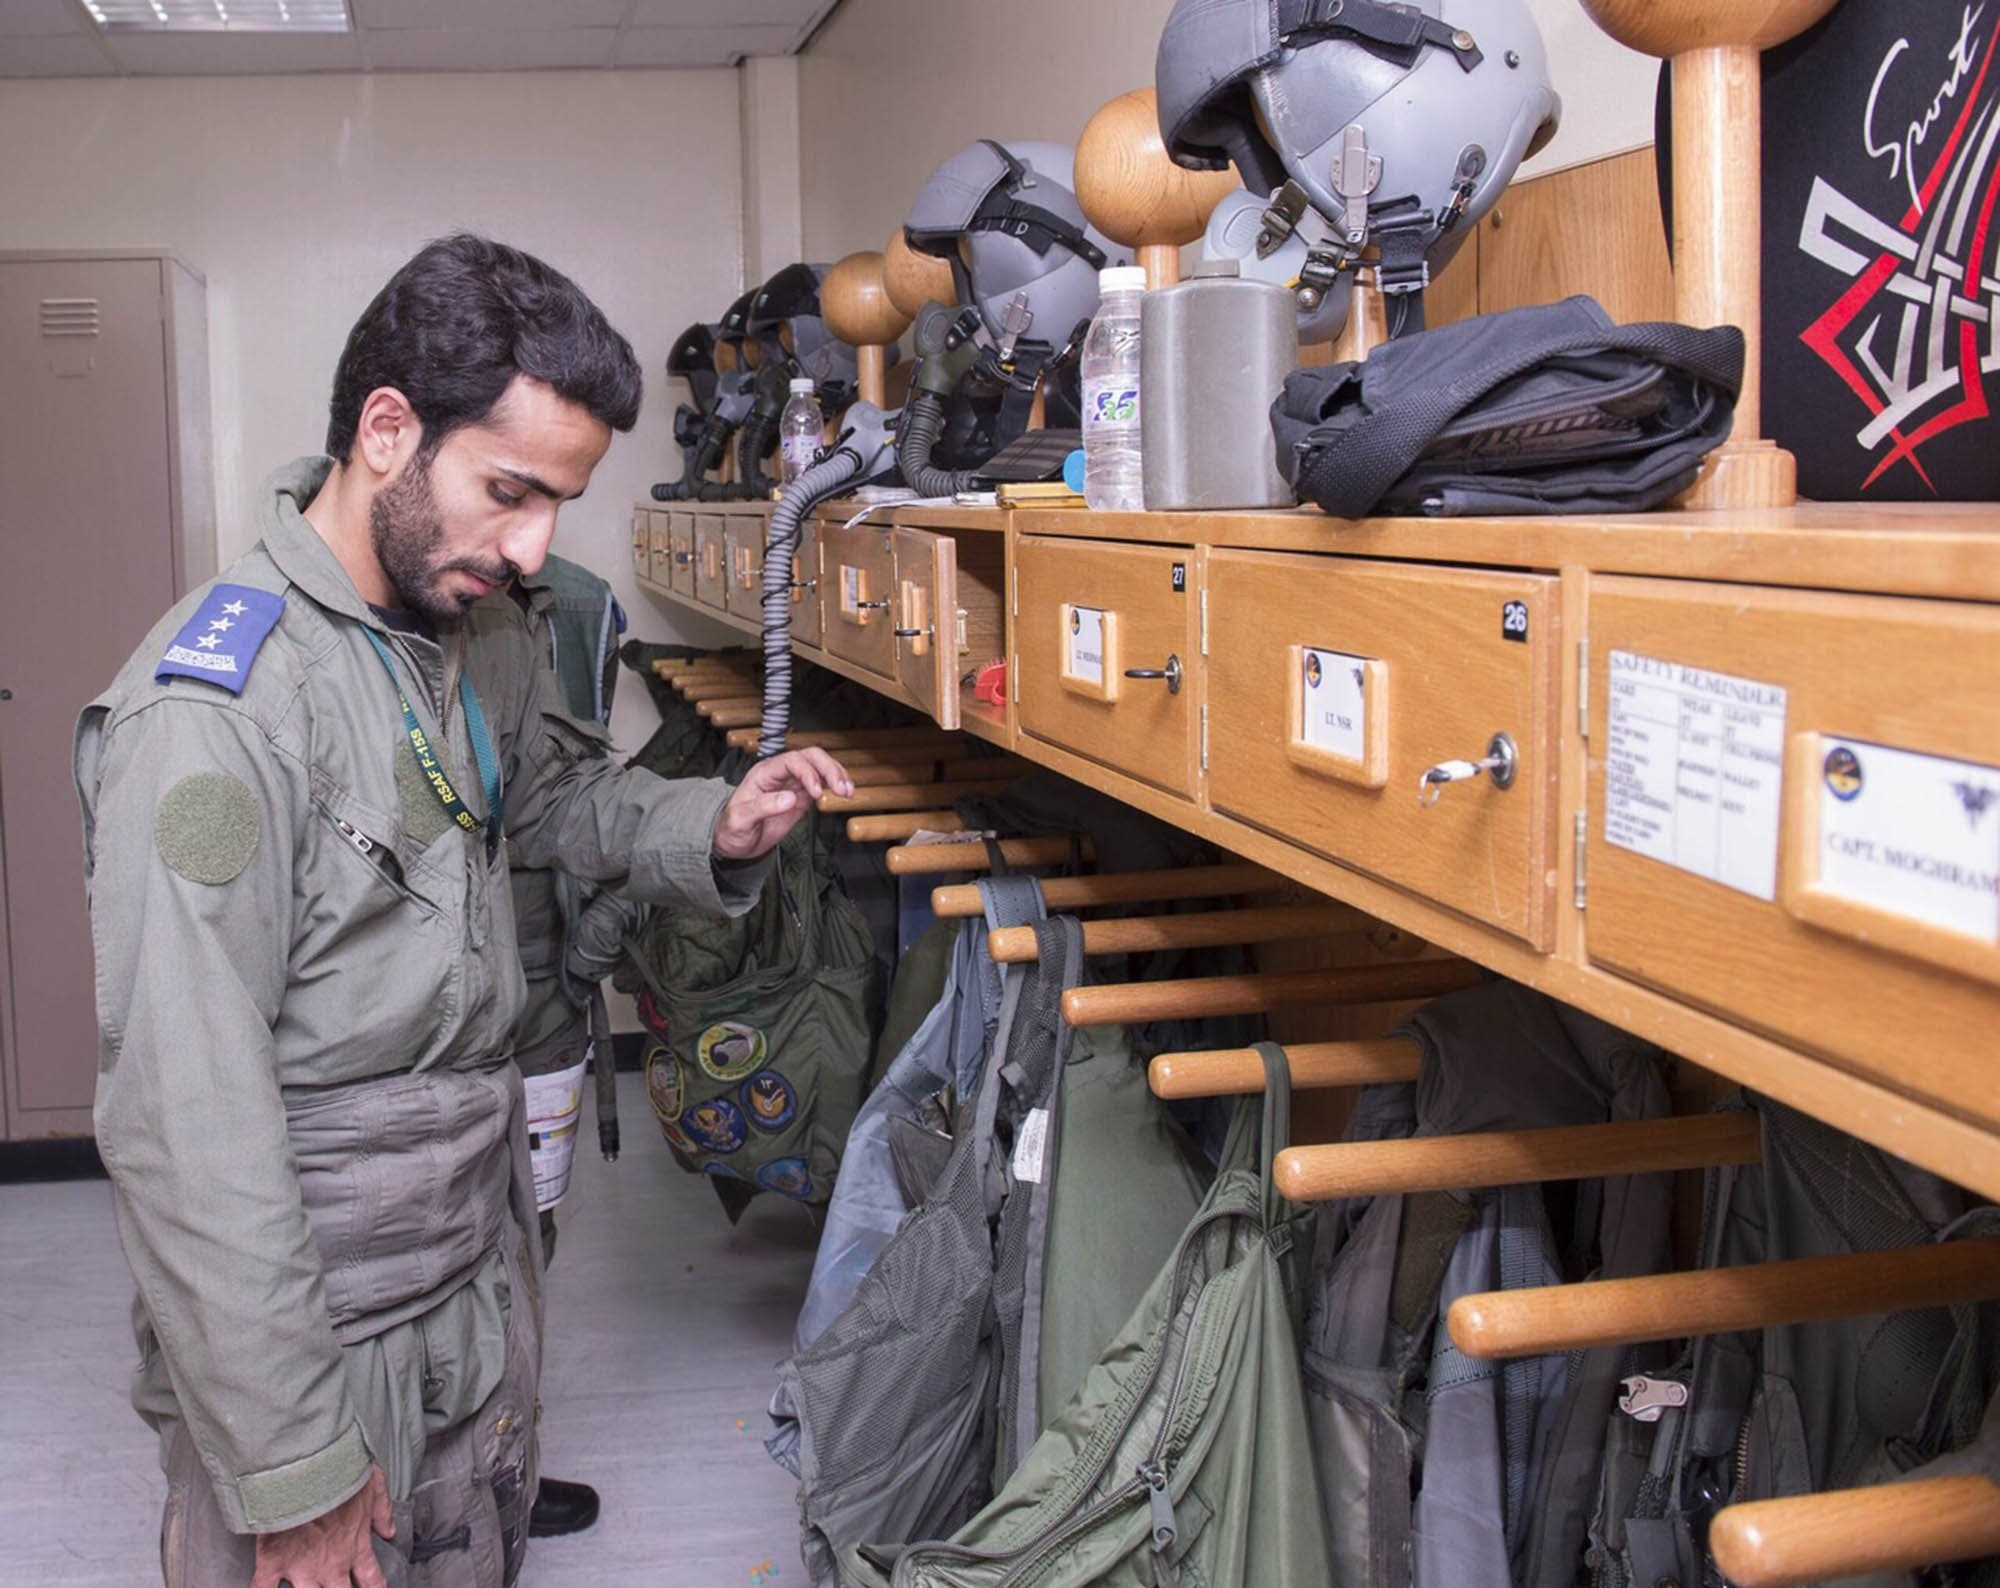 In a handout picture released by the official Saudi Press Agency (SPA), a Saudi Arabian air force pilot looks at flying jackets at an undisclosed location on September 23, 2014. AFP